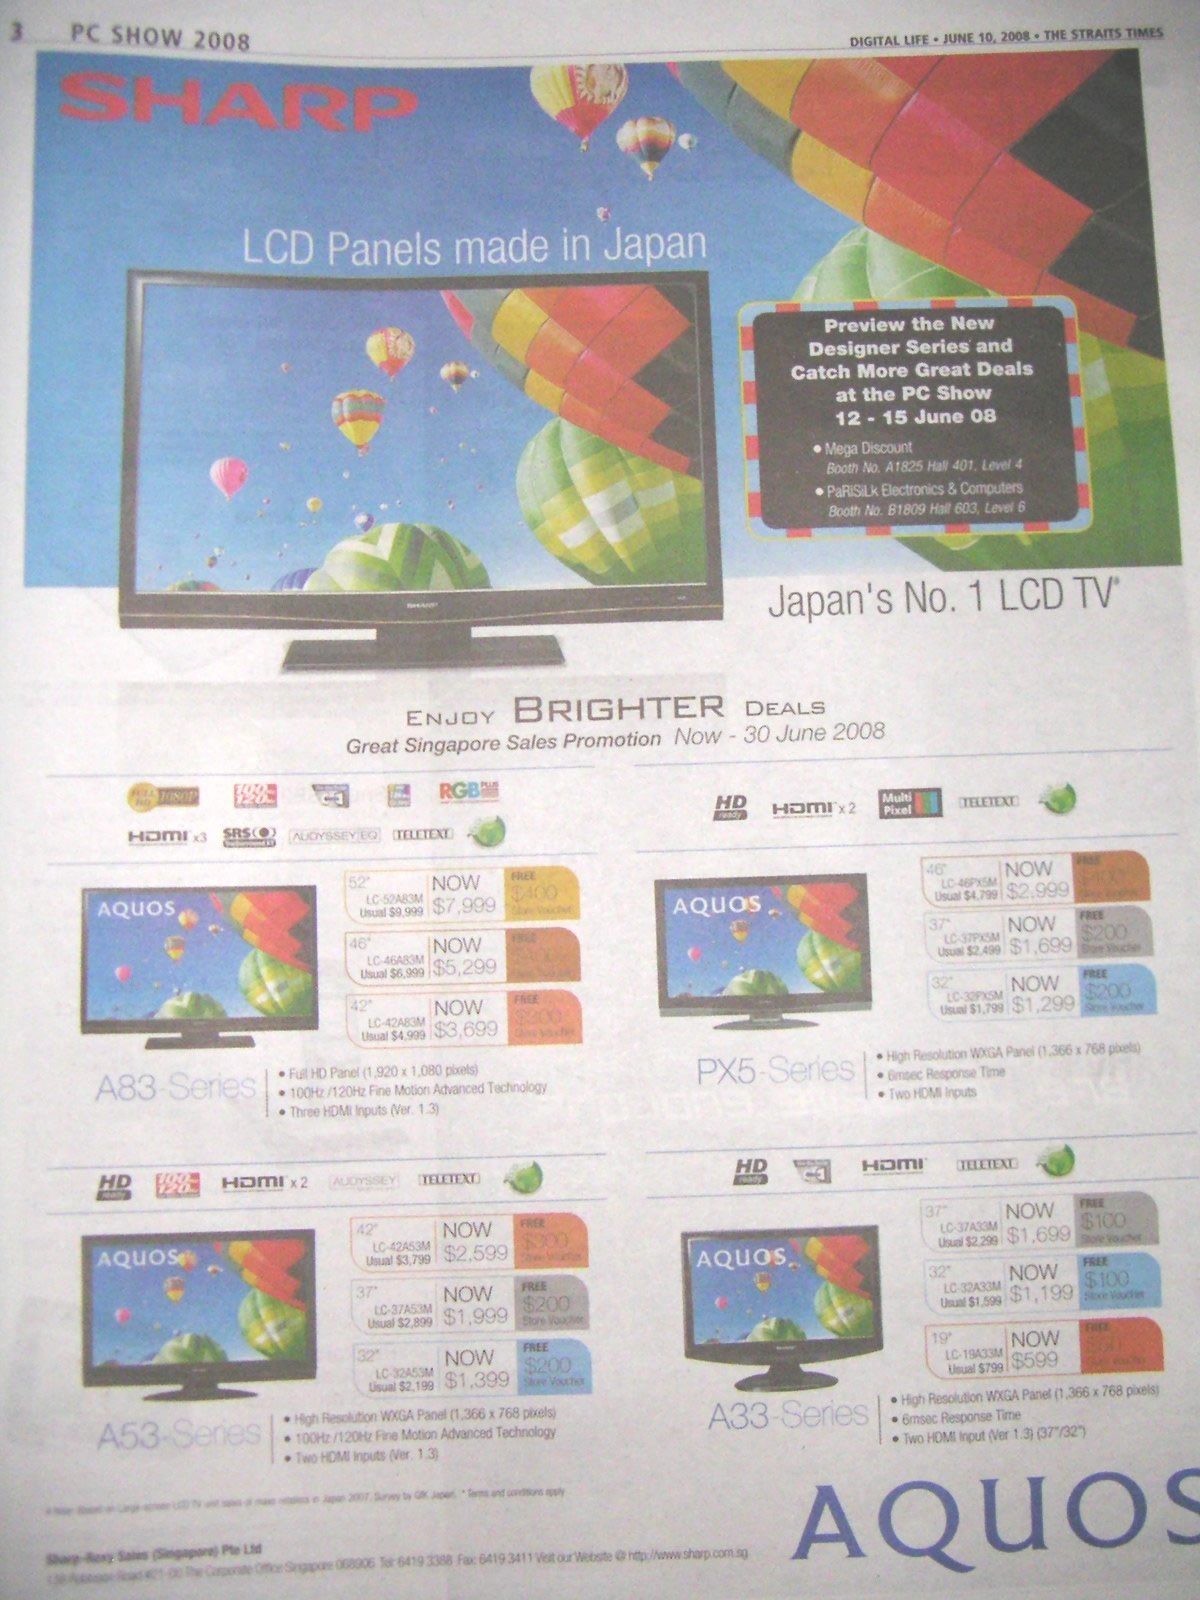 PC Show 2008 price list image brochure of Sharp Aquos